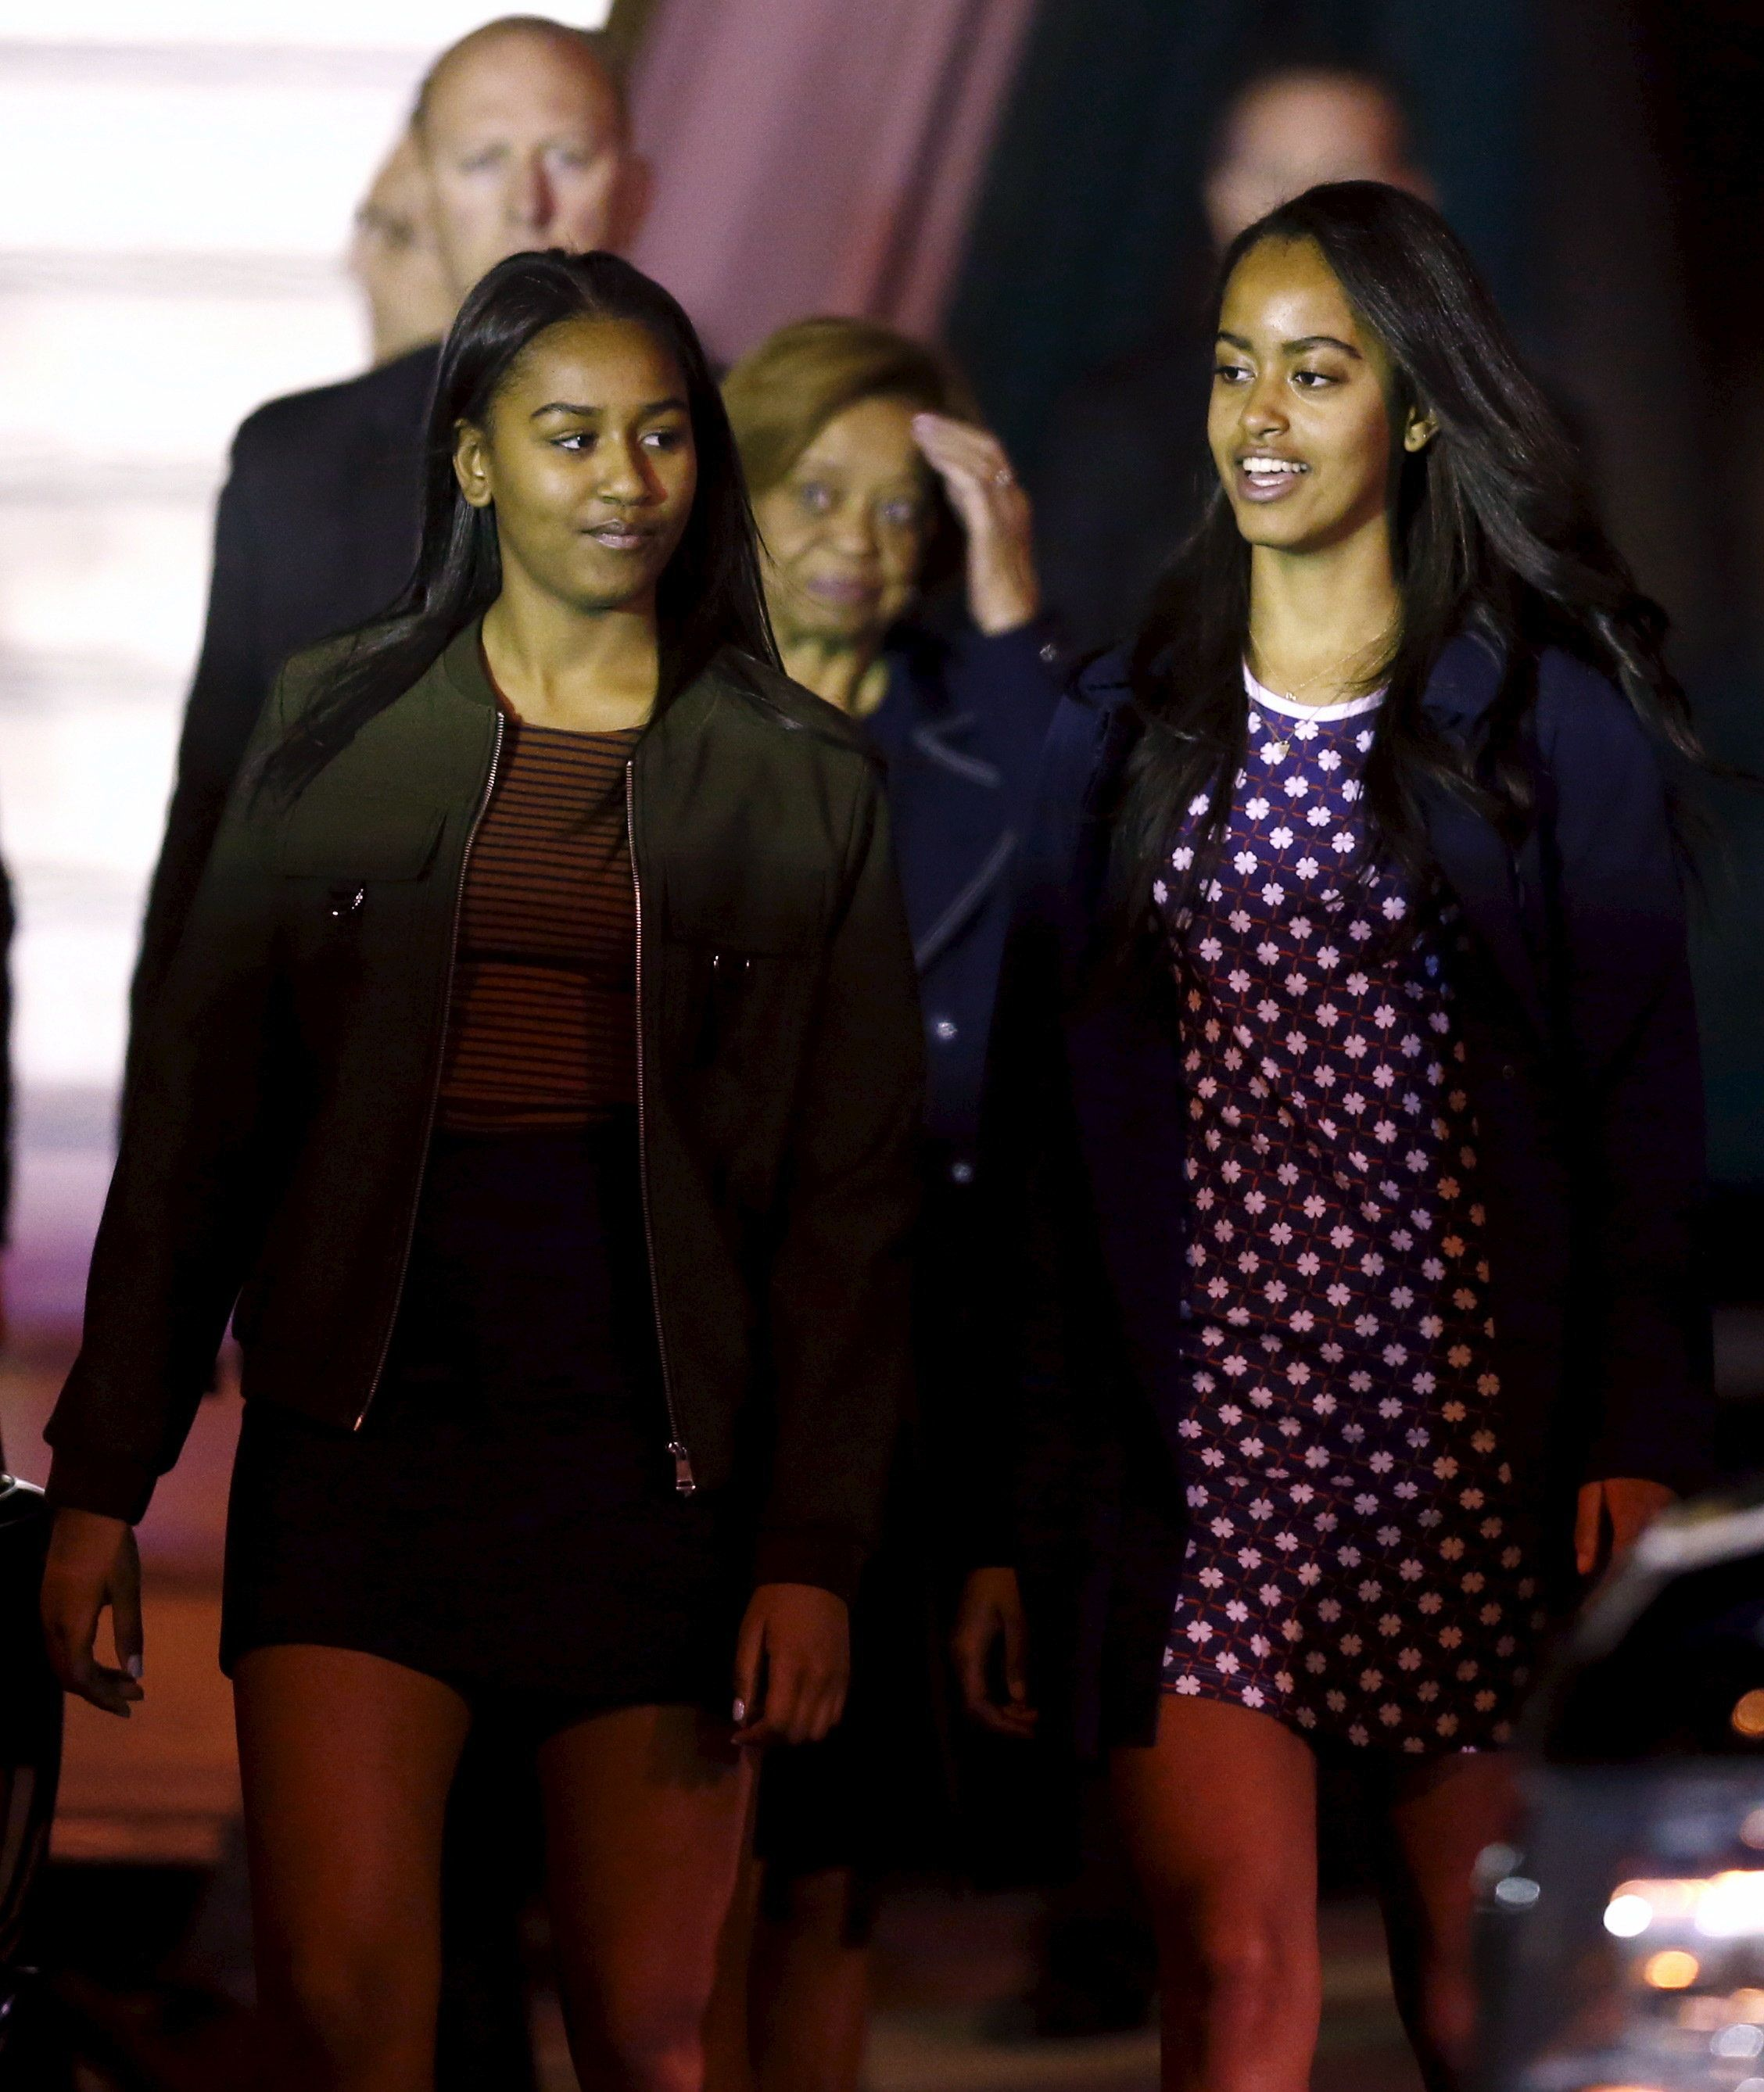 Daughters of U.S. President Barack Obama Sasha (L) and Malia along with Obama's mother-in-law Marian Robinson (C, back) arrive at Buenos Aires' international airport, early March 23, 2016.  REUTERS/Marcos Brindicci